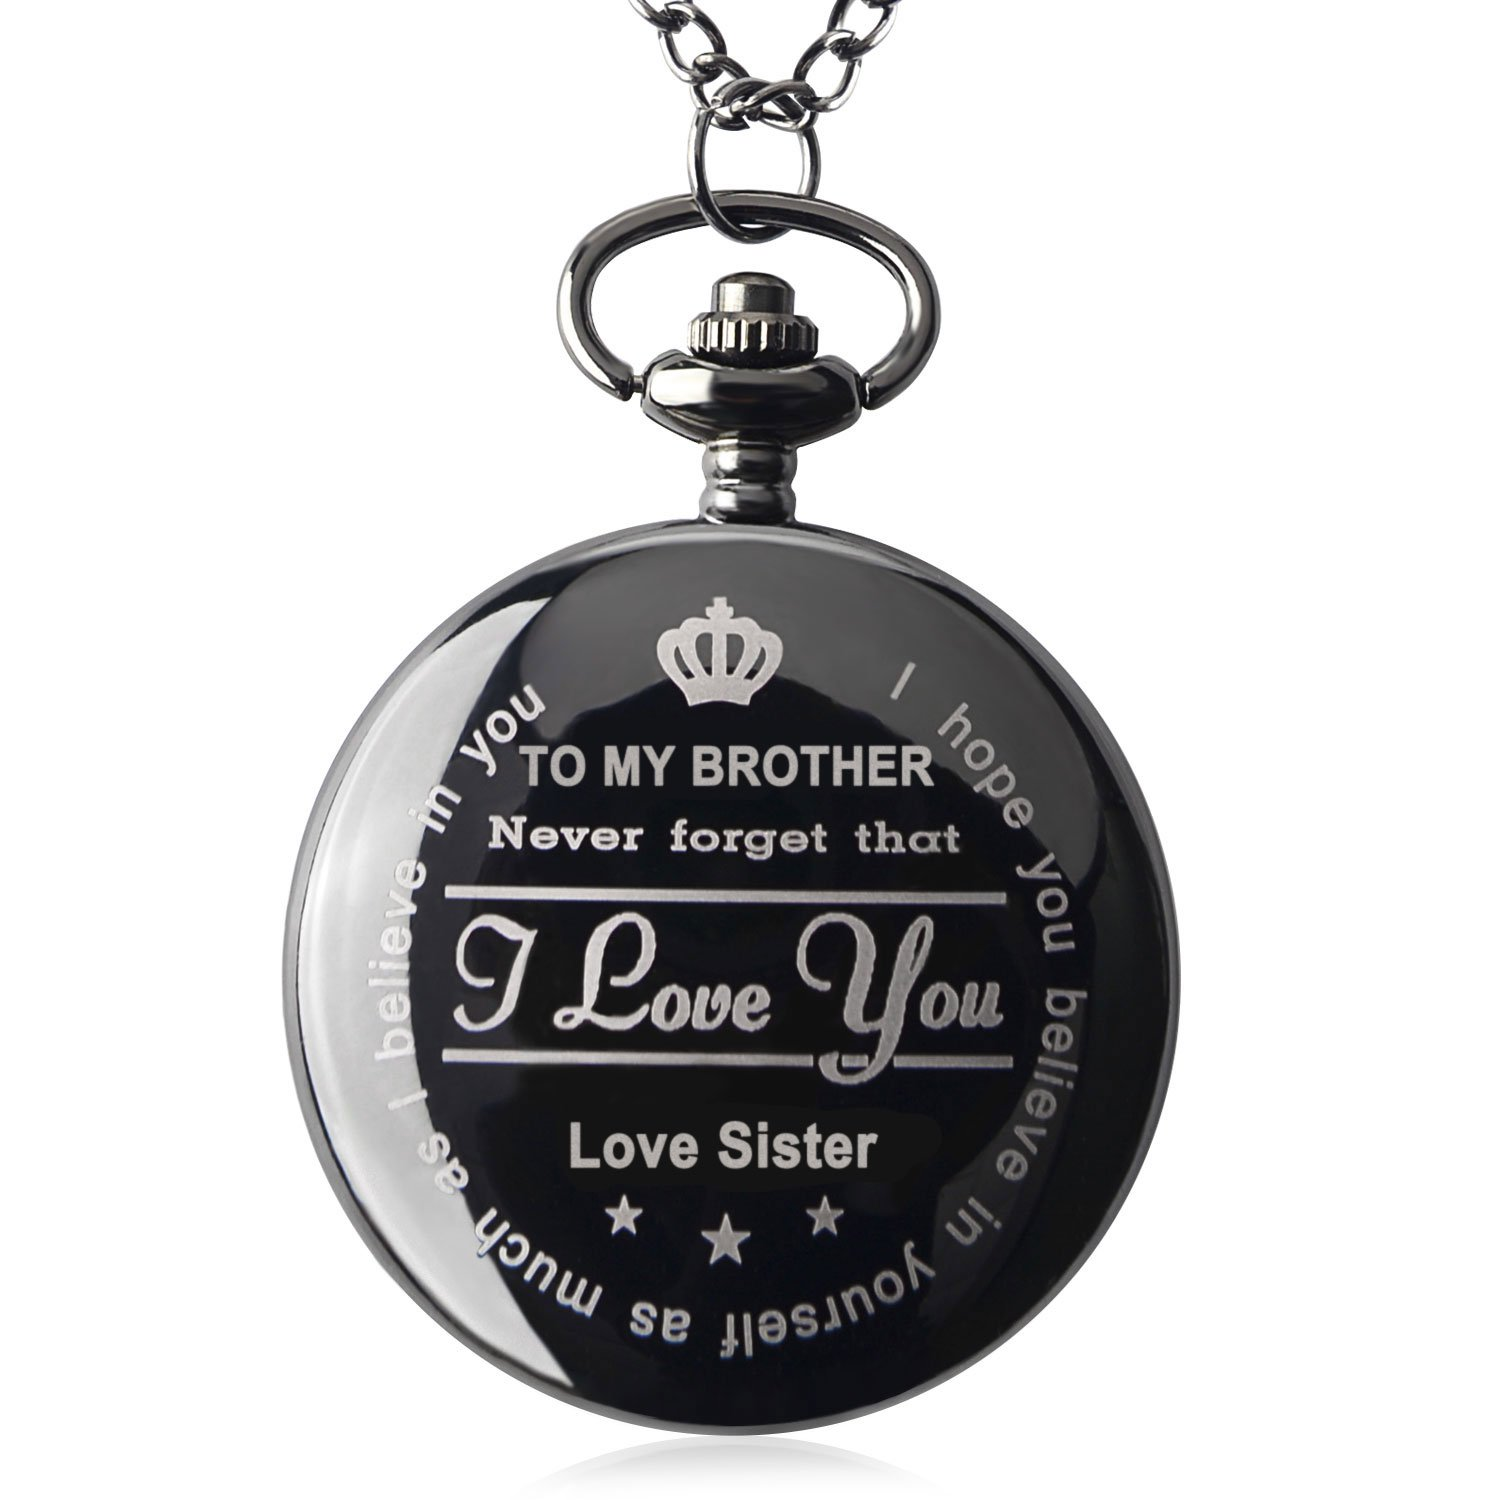 Qise Pocket Watch To My Brother - Love Sister(Love Brother) Necklace Chain From Sister to Brother Gifts with Black Gift Box By (Love Sister Black)